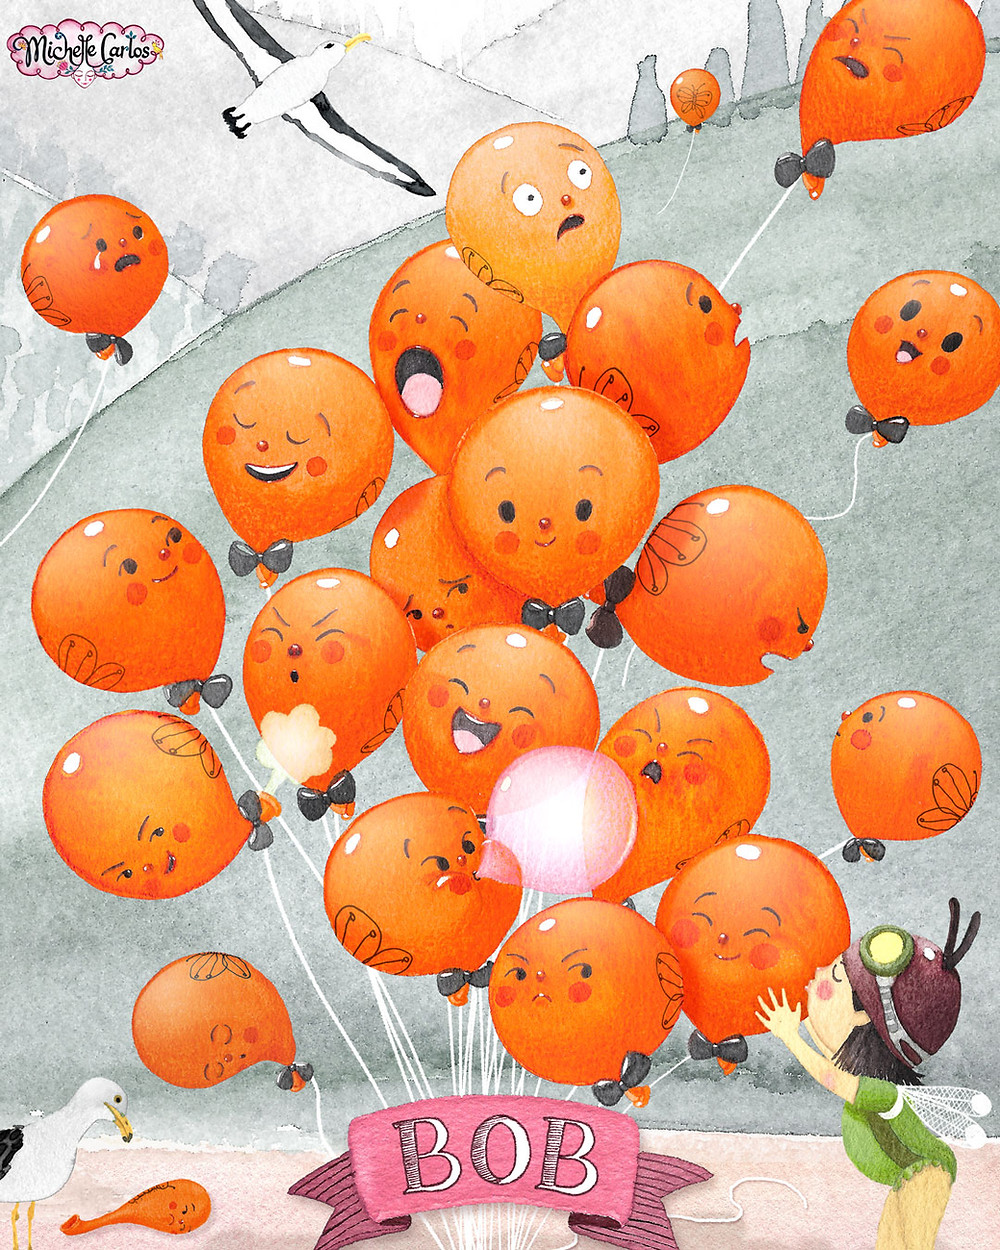 a bundle of balloons with faces